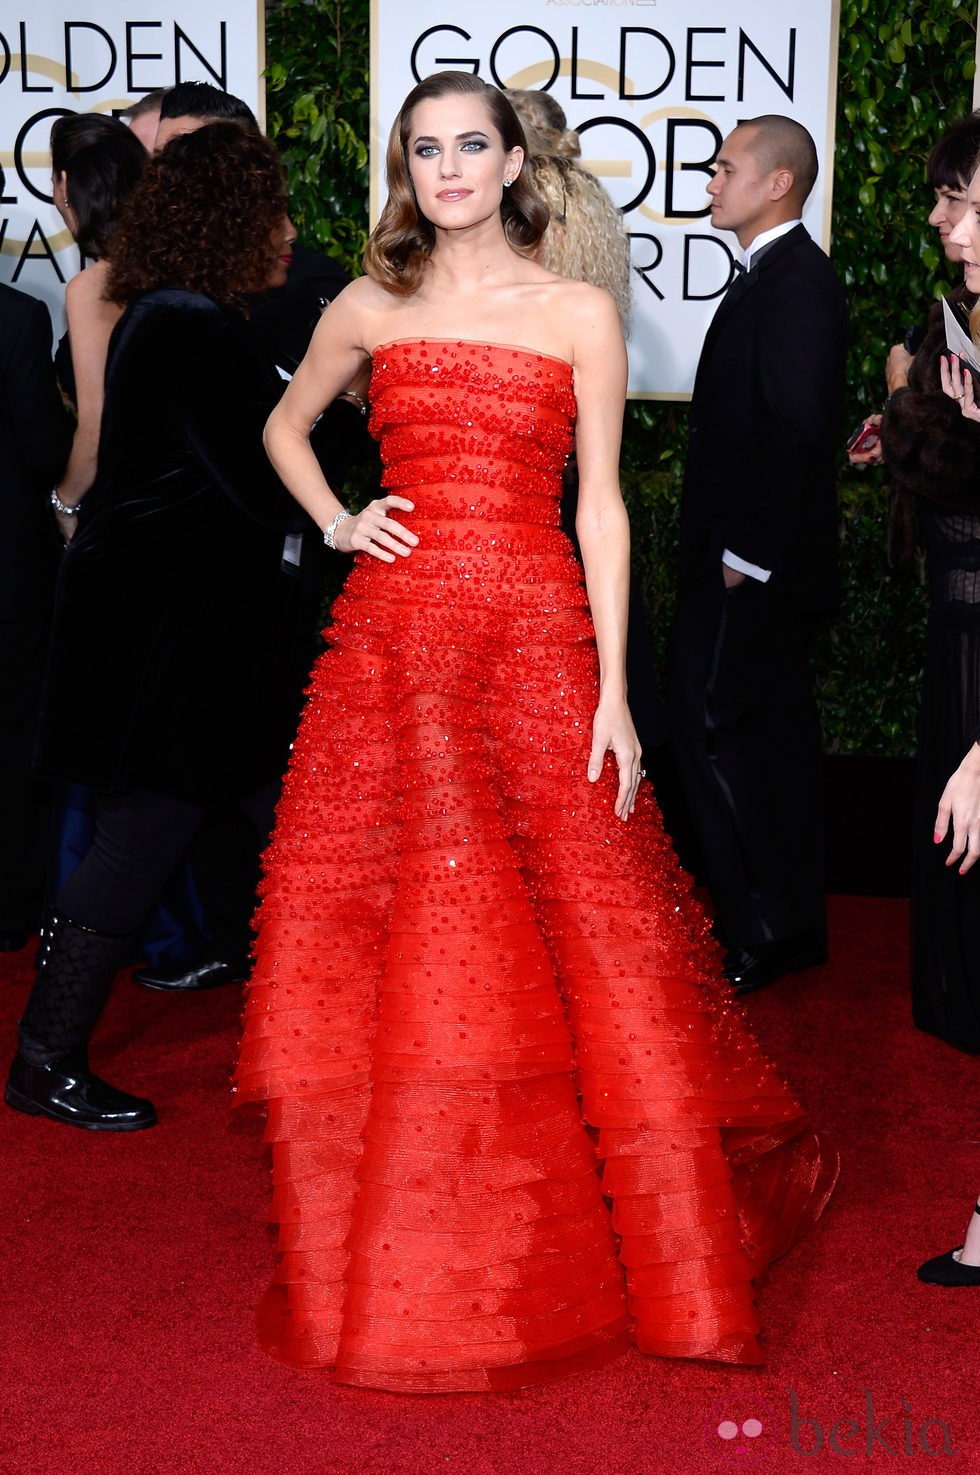 Allison Williams en la alfombra roja de los Globos de Oro 2015